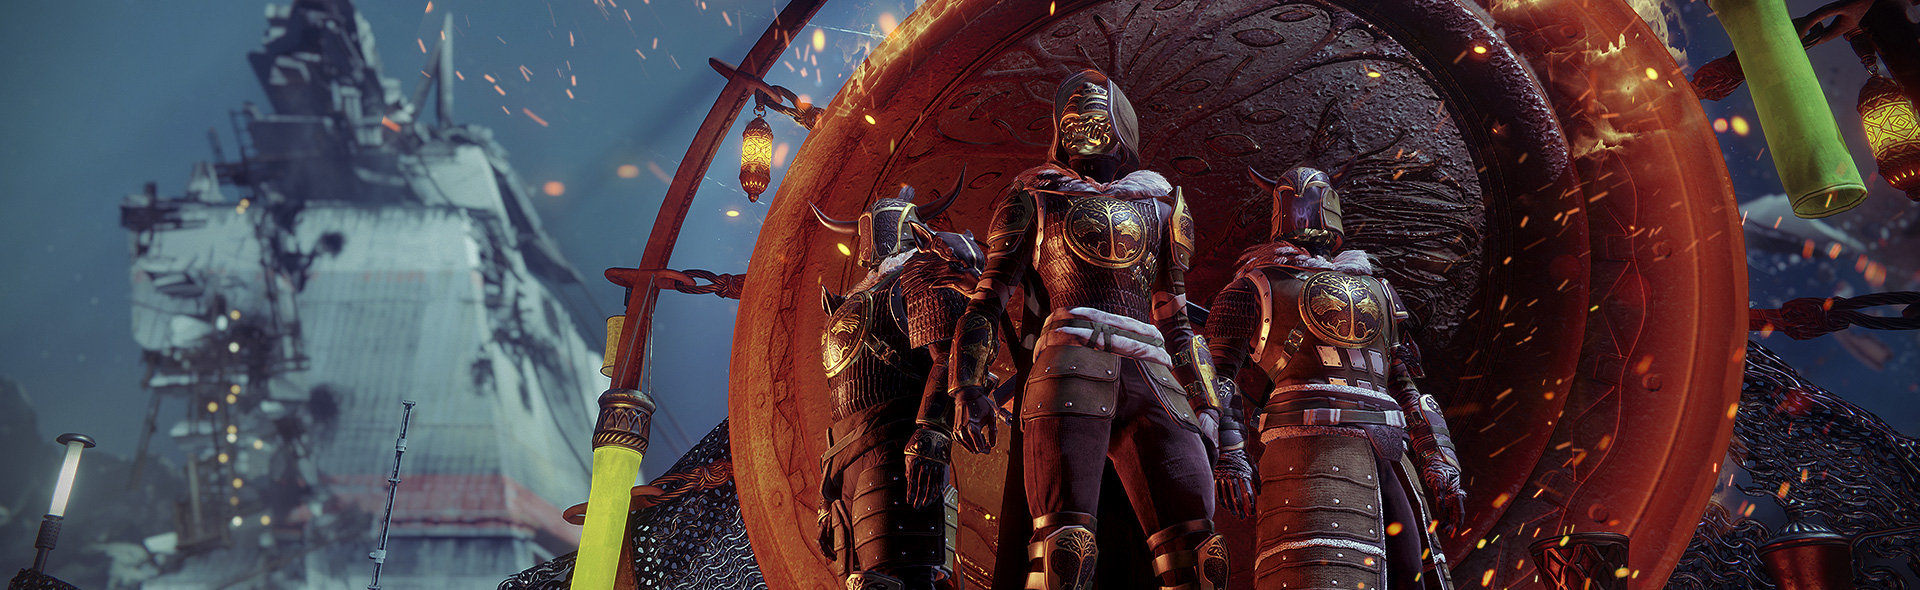 Destiny 2 - Iron Banner Guardians standing in front of Iron Medallion